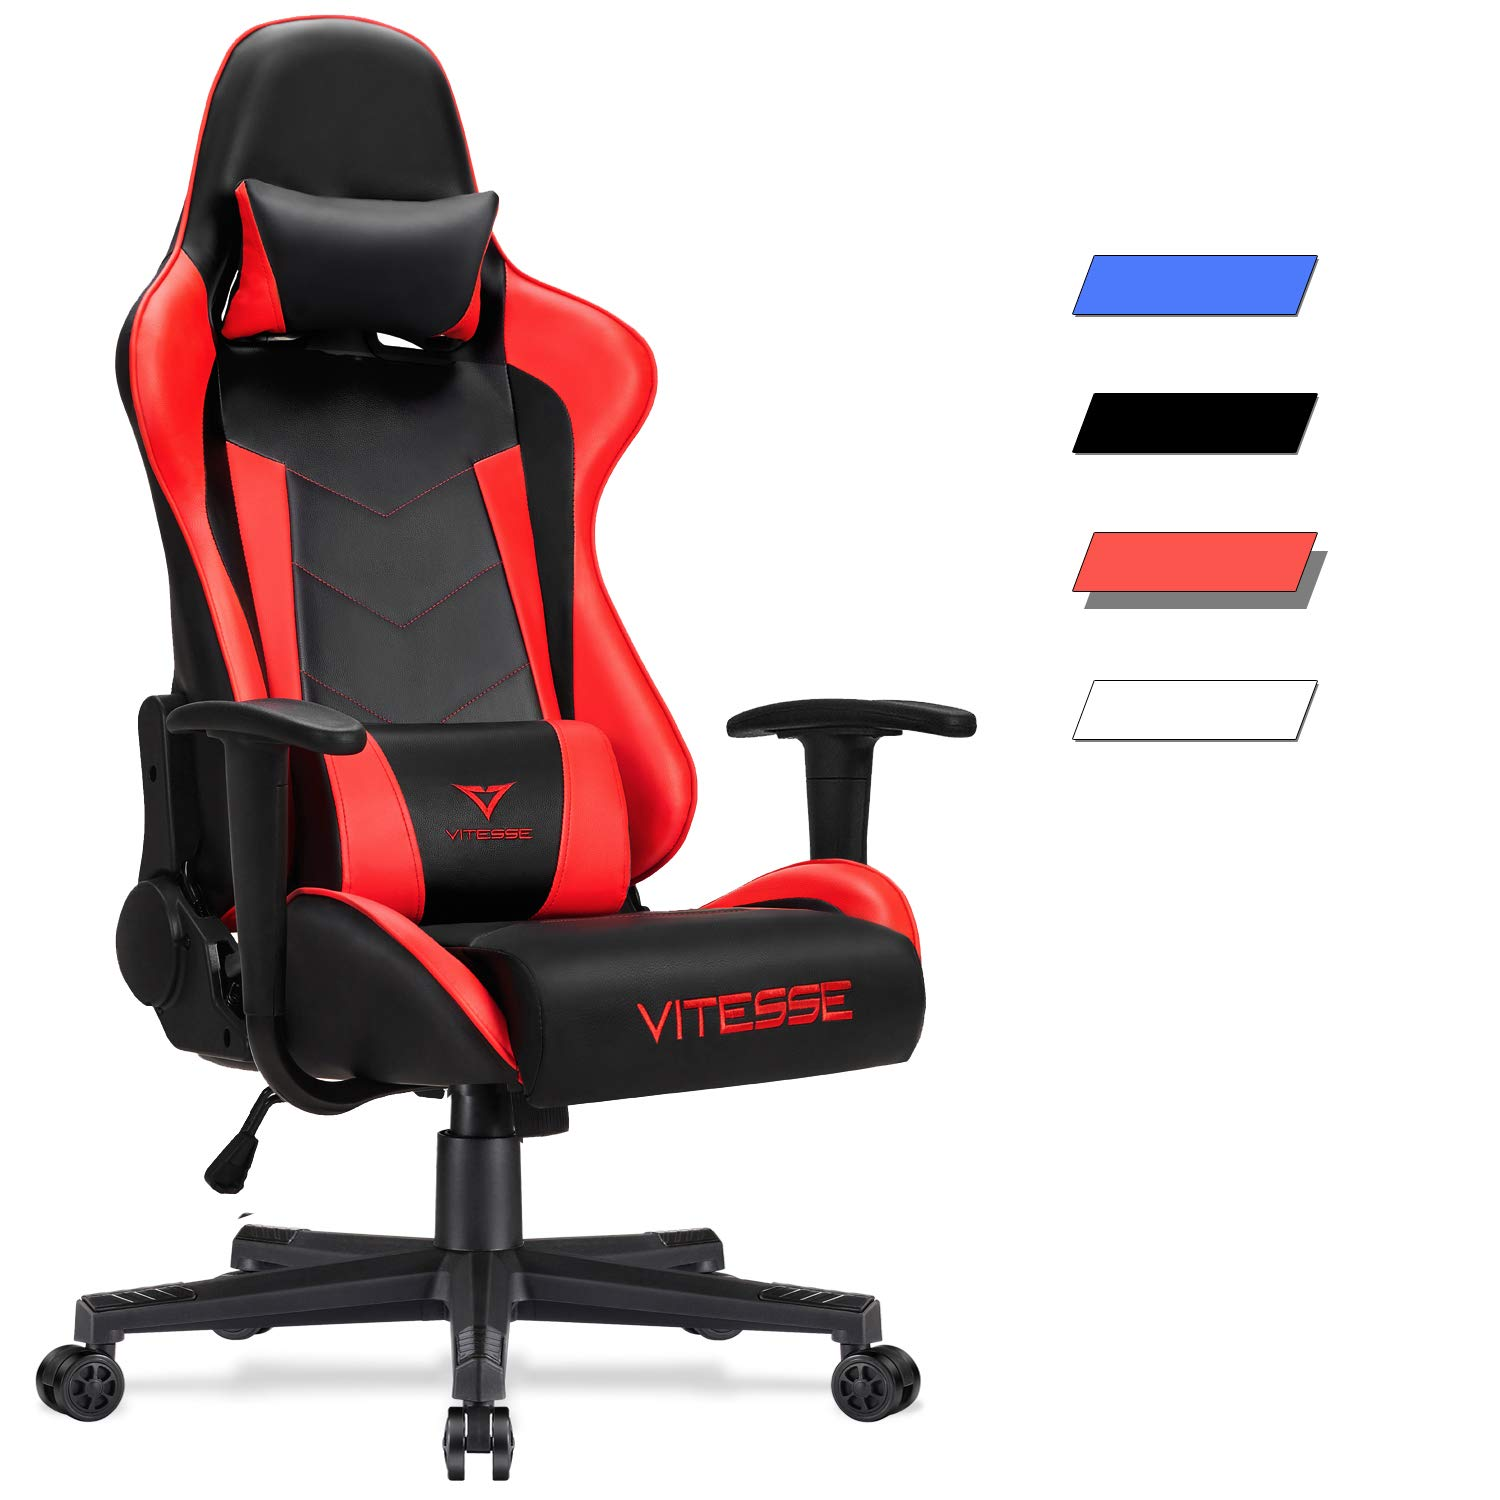 Vitesse Gaming Chair (Sillas Gaming) Video Gaming Chair Ergonomic Computer Desk Chair High Back Racing Style Comfortable Chair Swivel Executive Leather Chair with Lumbar Support and Headrest (Red)